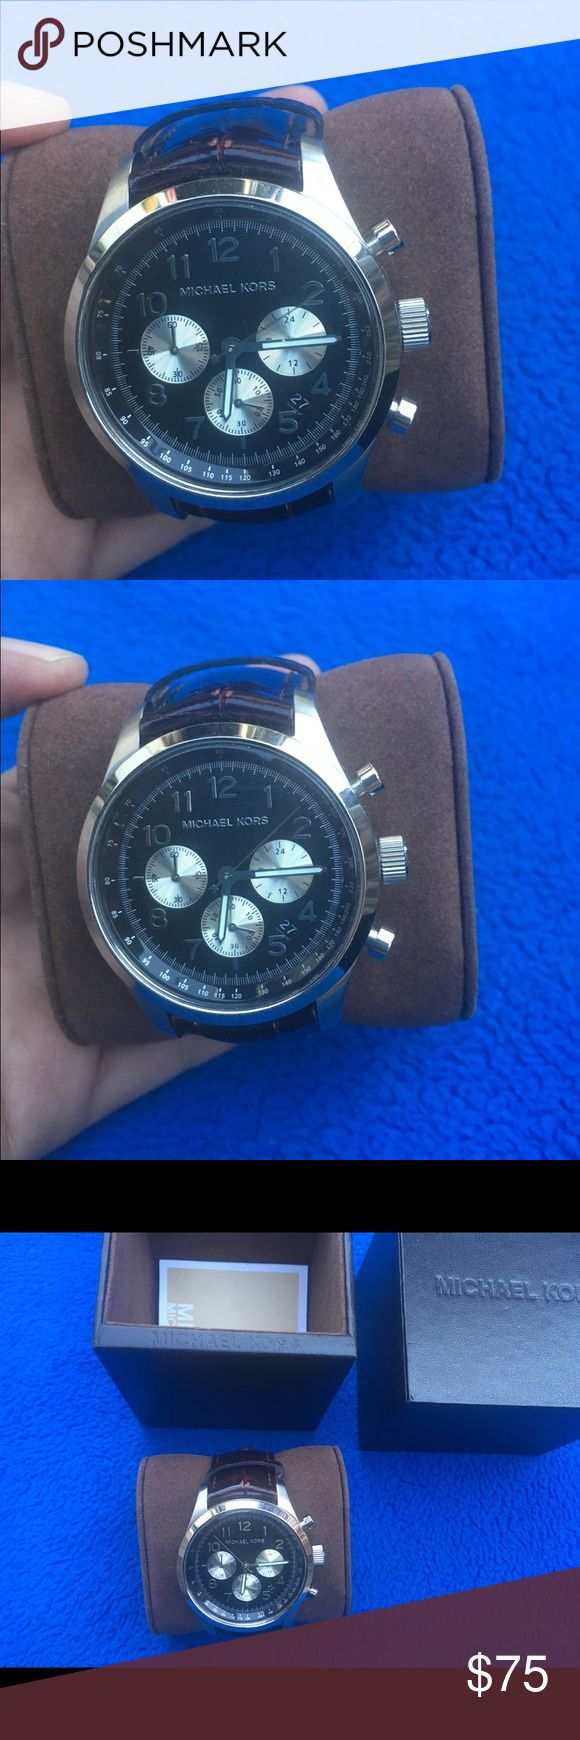 """Michael Kors MK8126 Mens Watch - Working! Authentic Michael Kors MK8126 Mens Watch - Working great and keep accurate time. Measurement: Case- 42mm diameter Band width-22mm wide Watch length- 9"""" long Great Condition! No scratches on the lens! Comes w/ Box! Michael Kors Accessories Watches"""